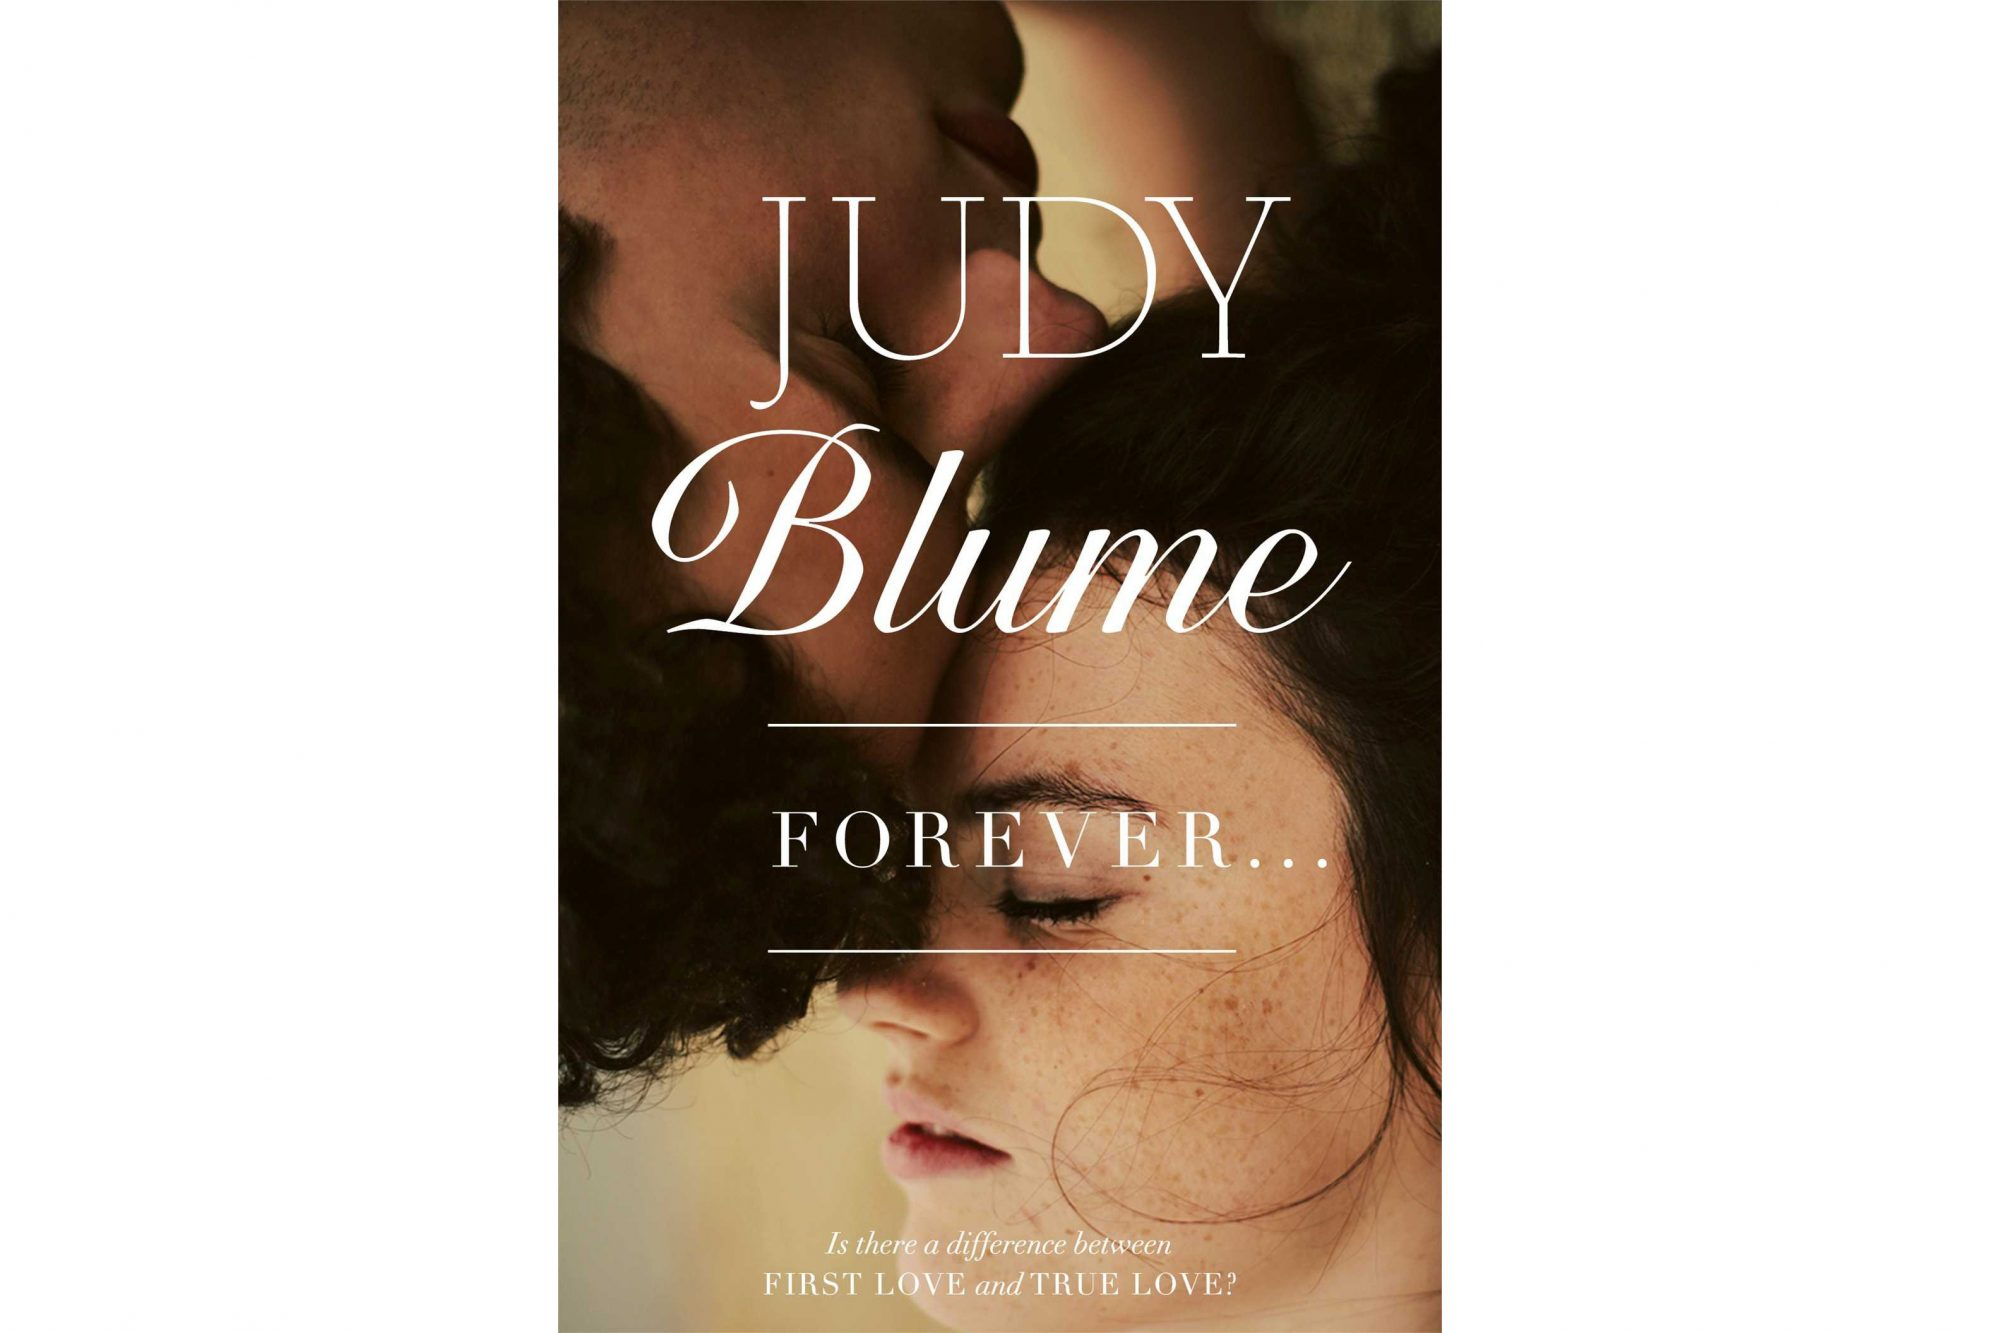 Forever, by Judy Blume